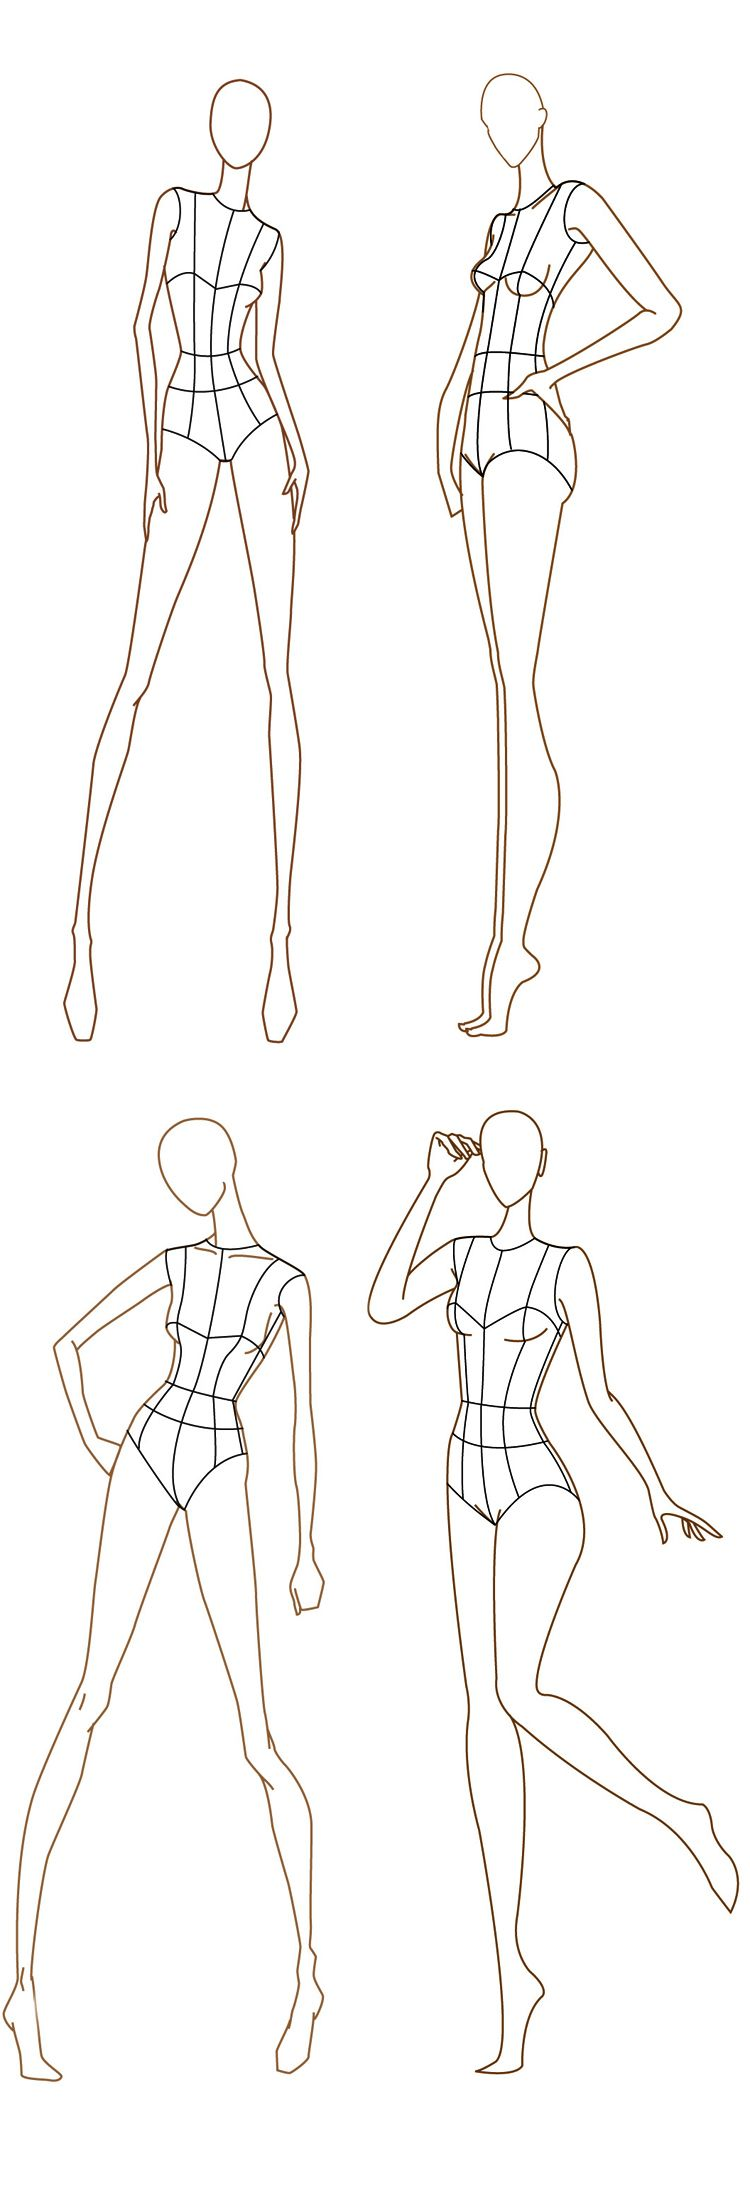 Free download fashion design templates more here http for Fashion designer drawing template